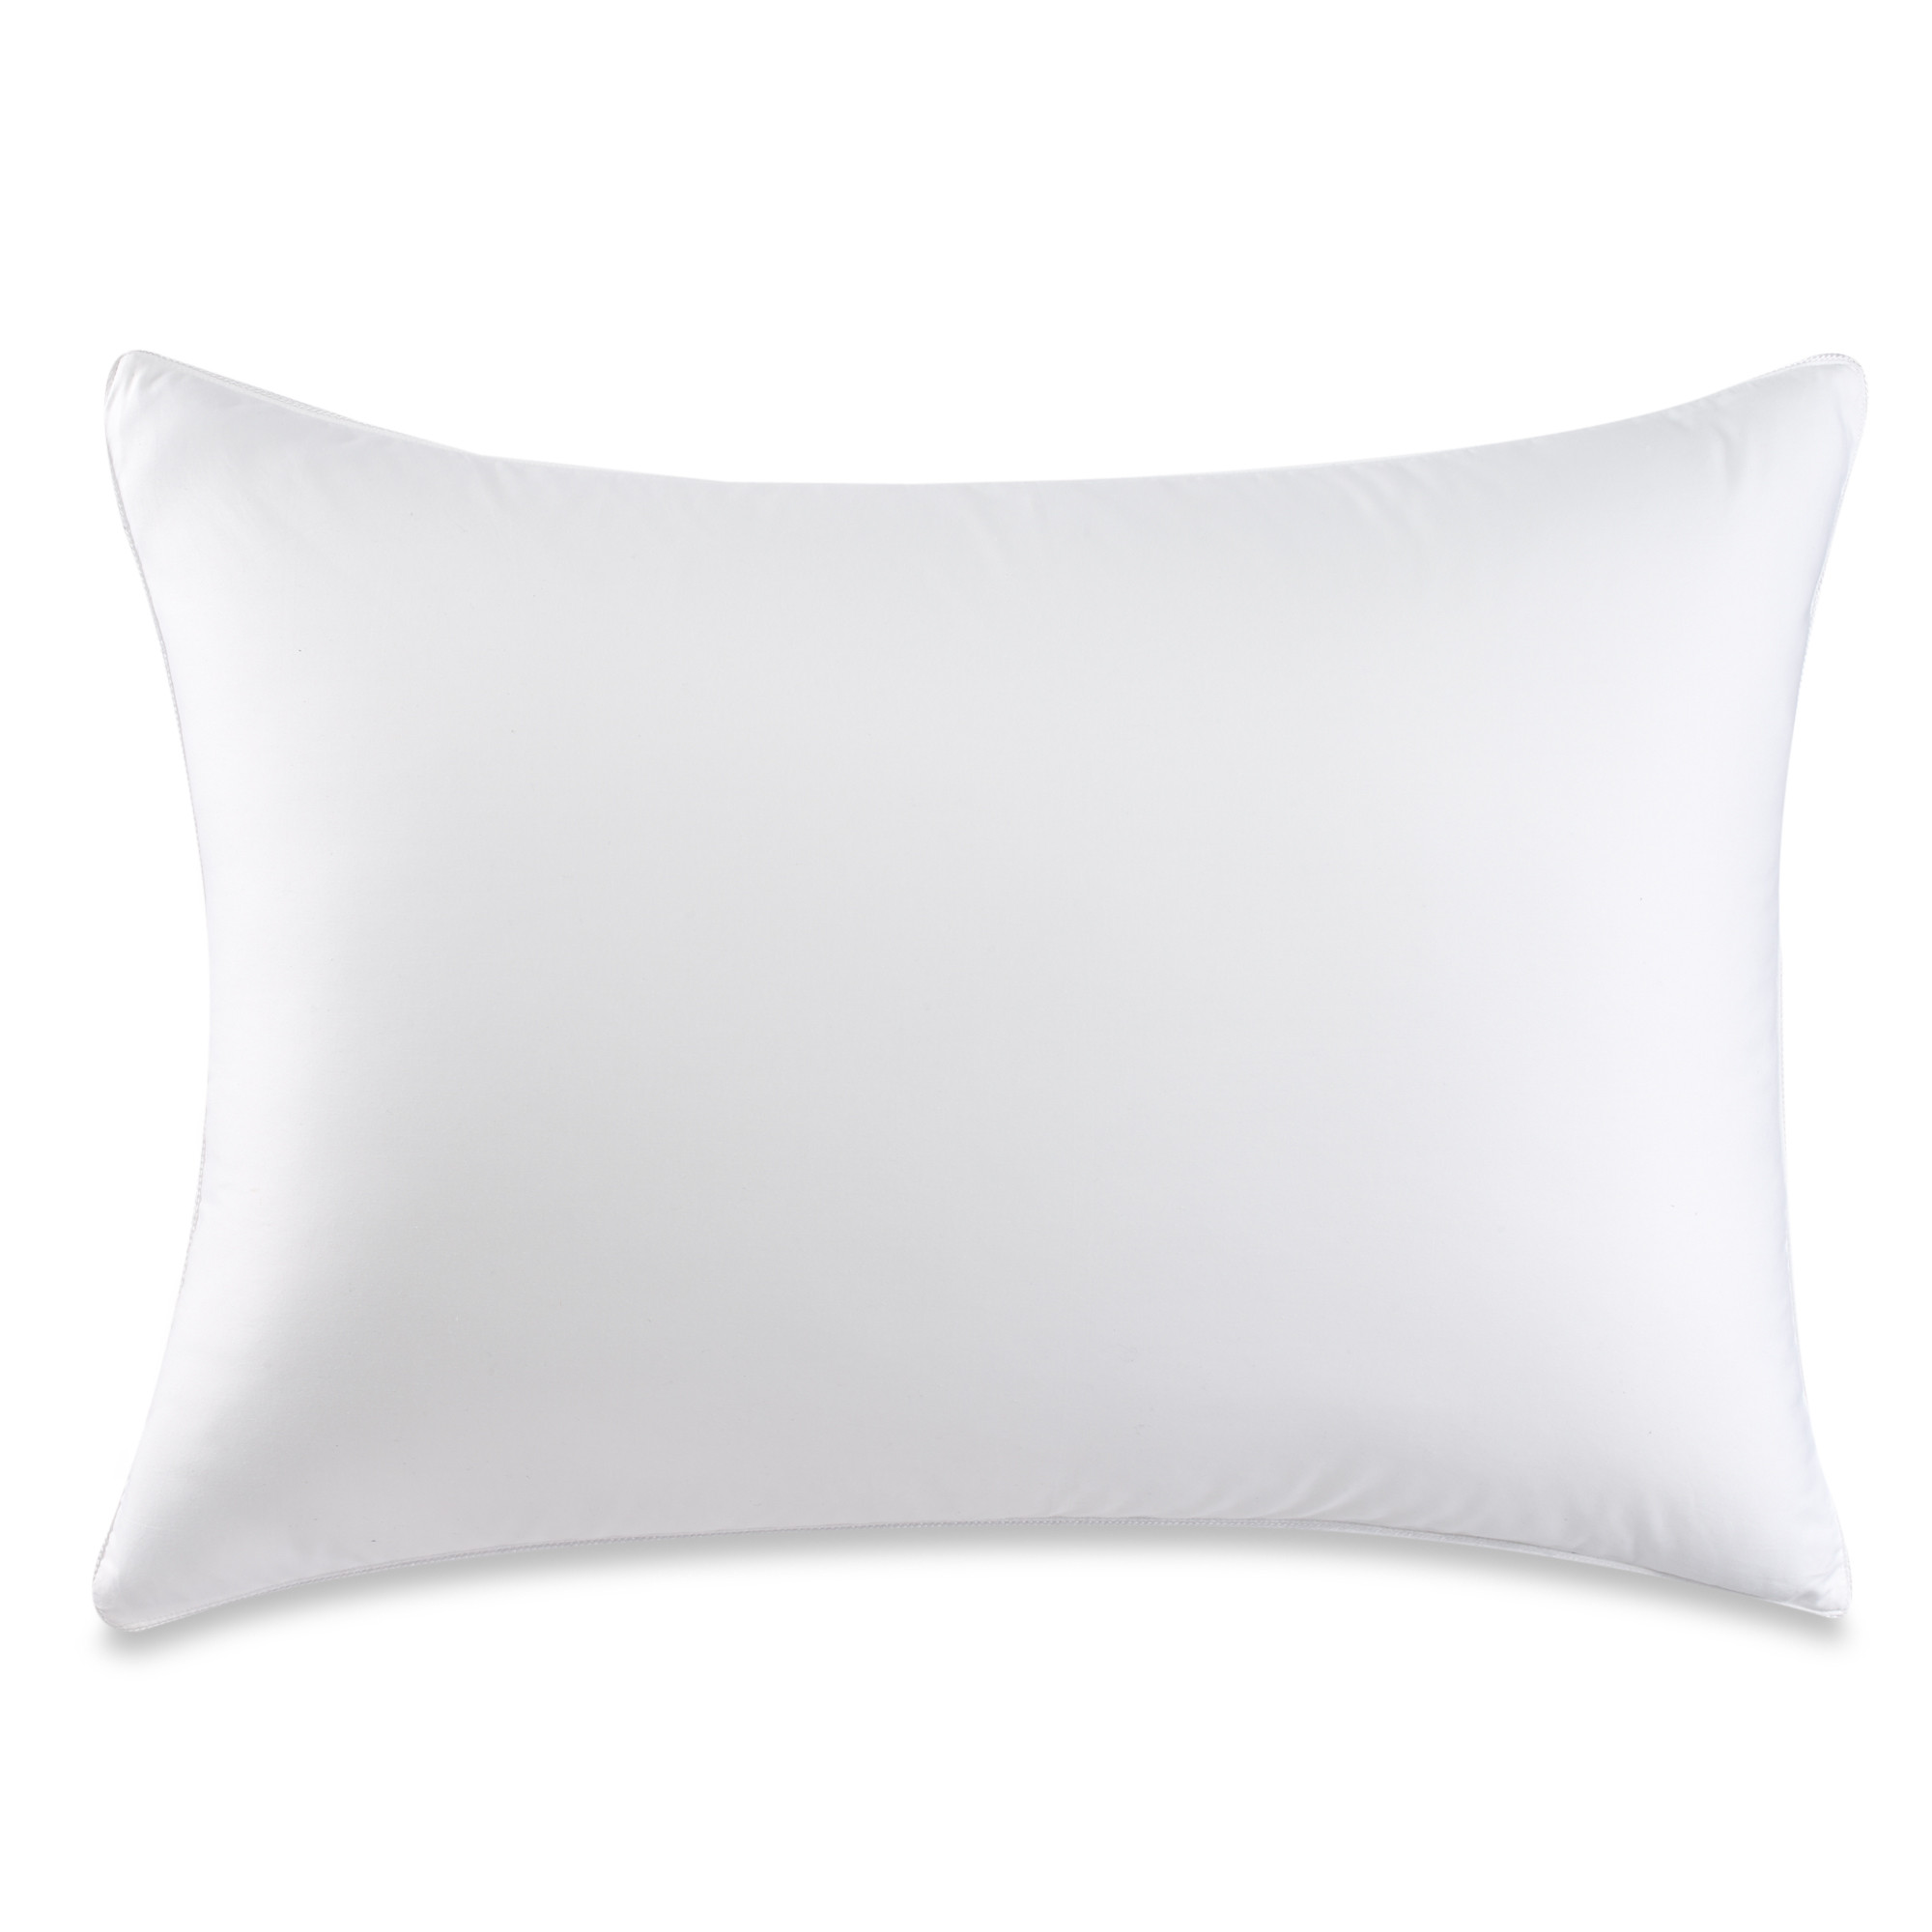 Therapedic Dacron Memorelle Fiber Back/Stomach Sleeper Pillow in White